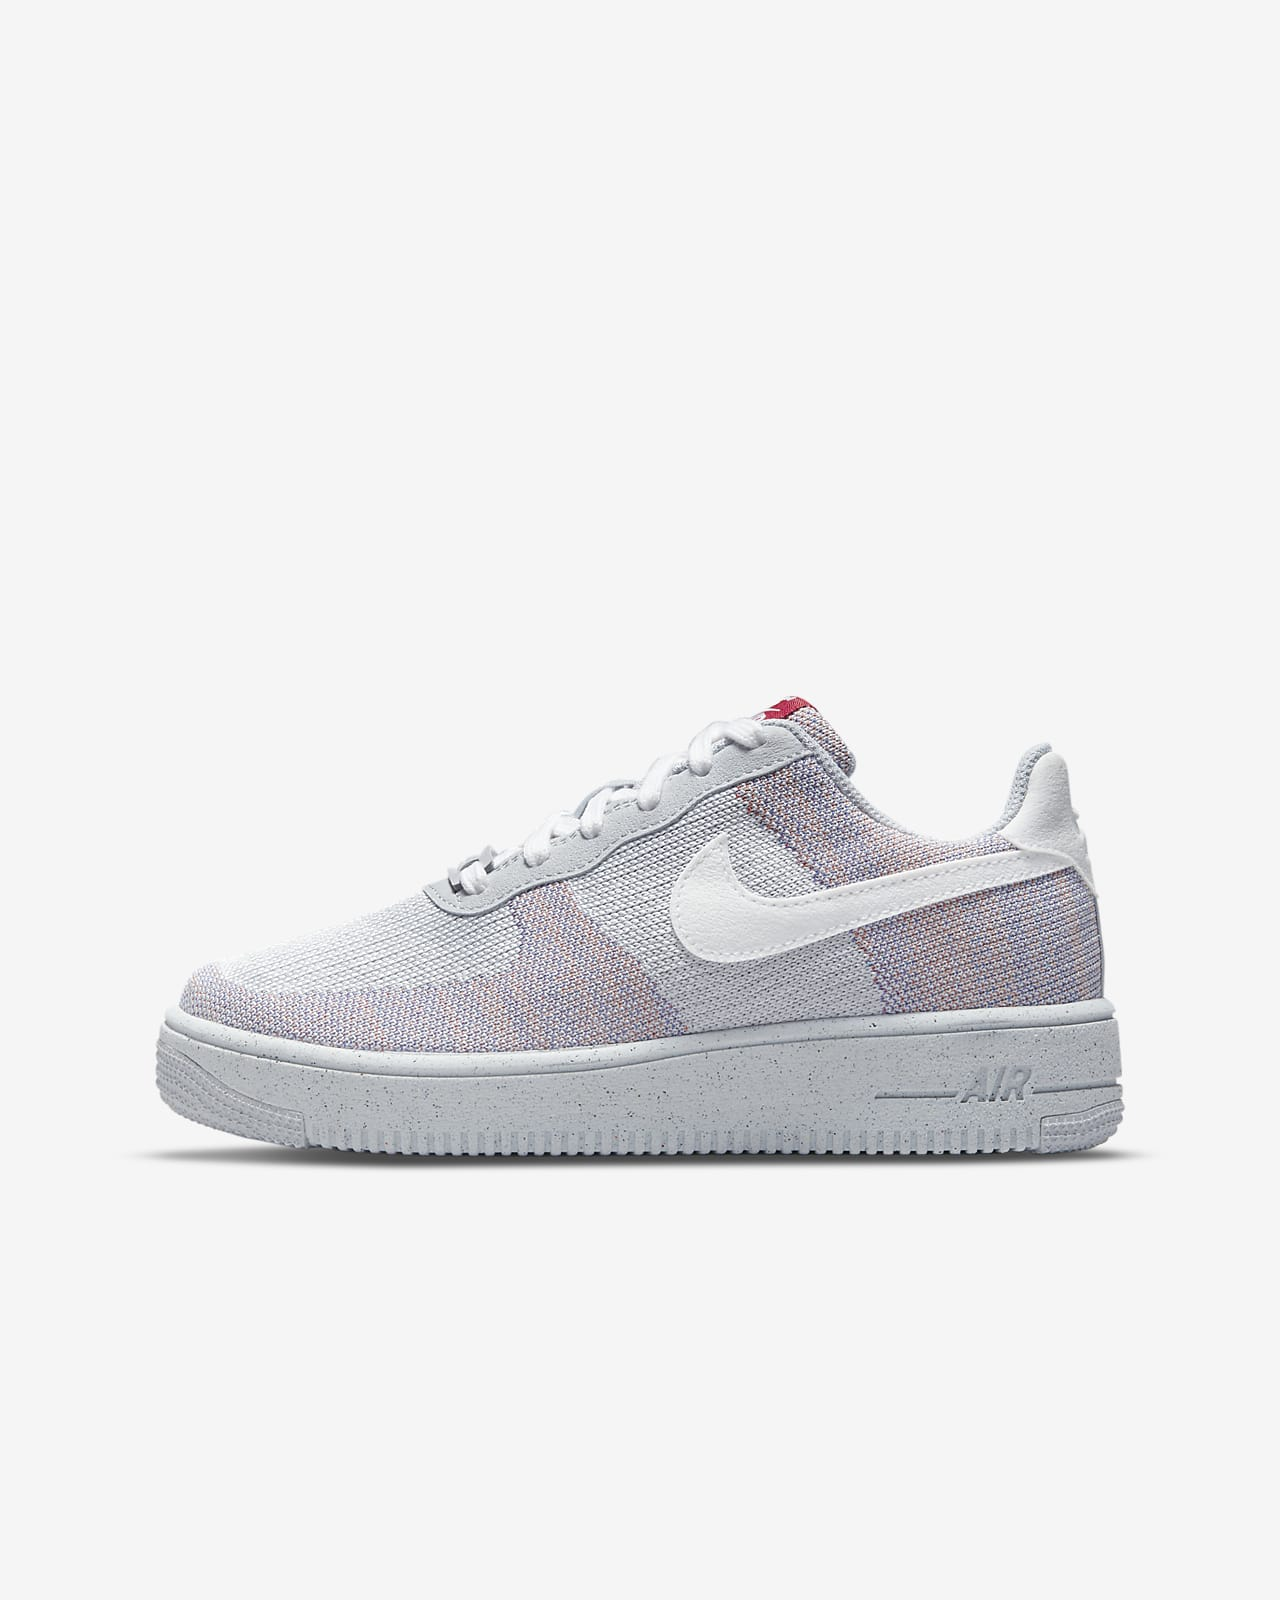 Nike Air Force 1 Crater Flyknit Schuh für ältere Kinder